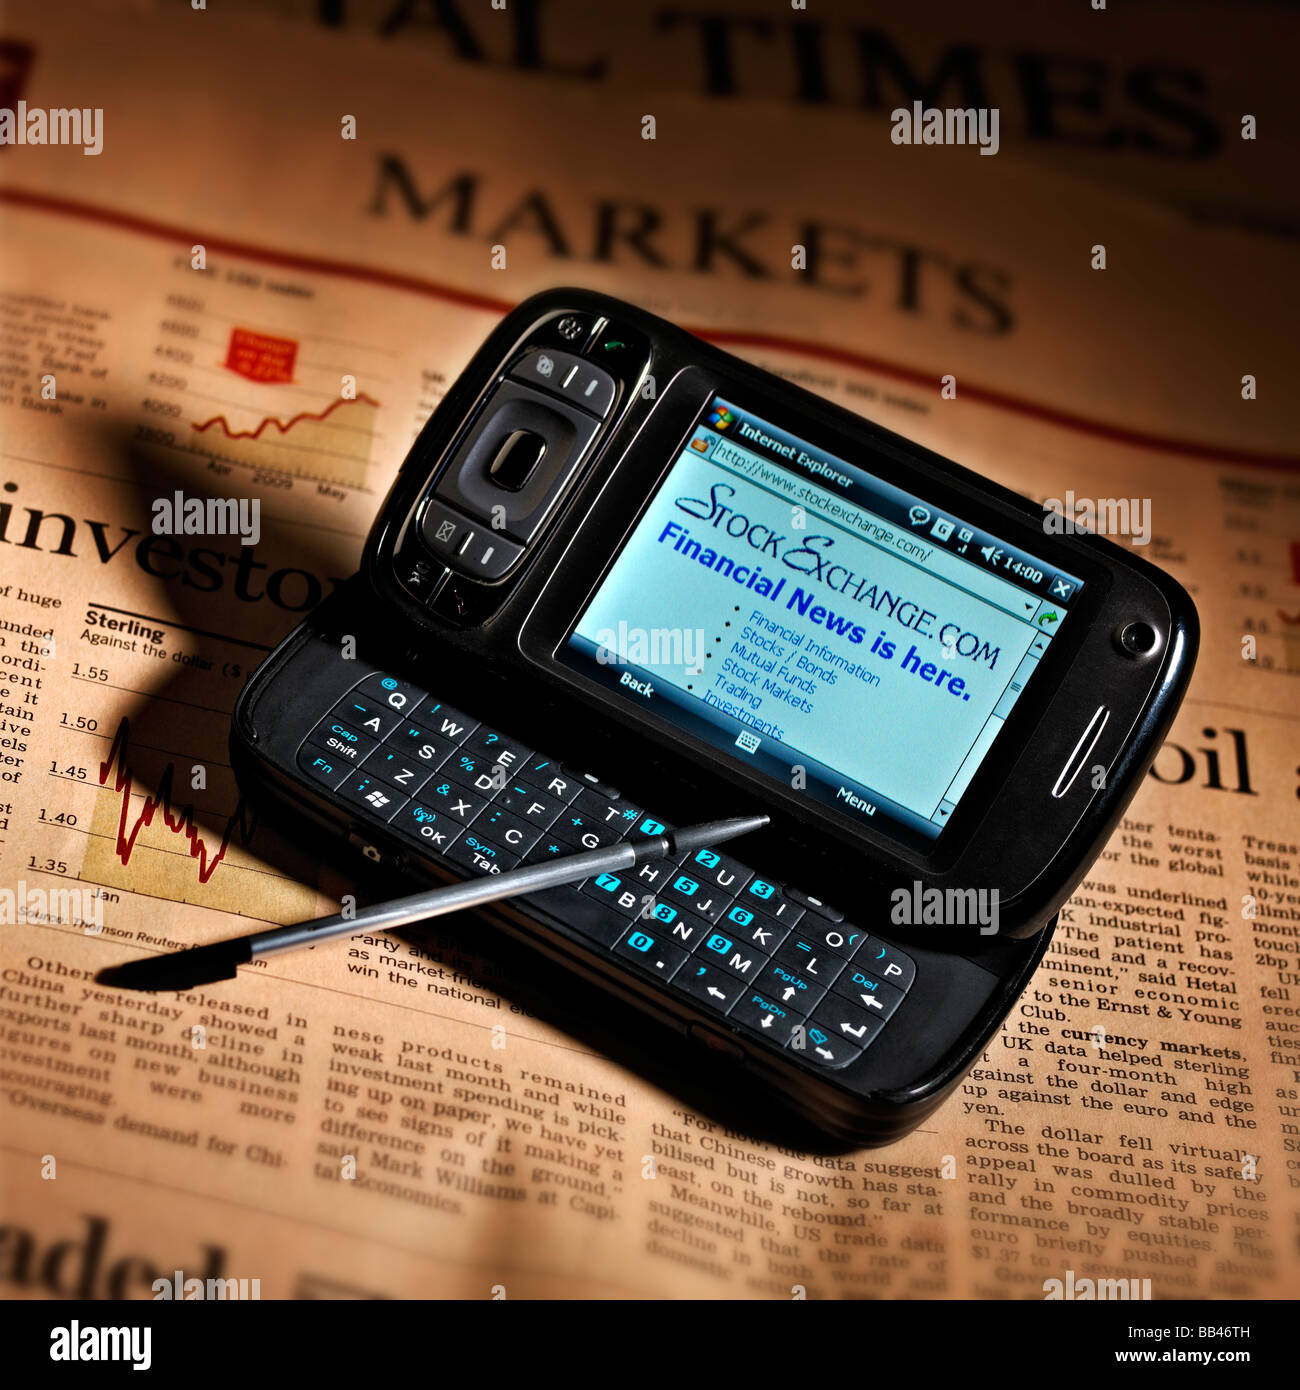 MOBILE PHONE PDA INTERNET ACCESS WITH NEWSPAPER FINANCIAL PAGE - Stock Image